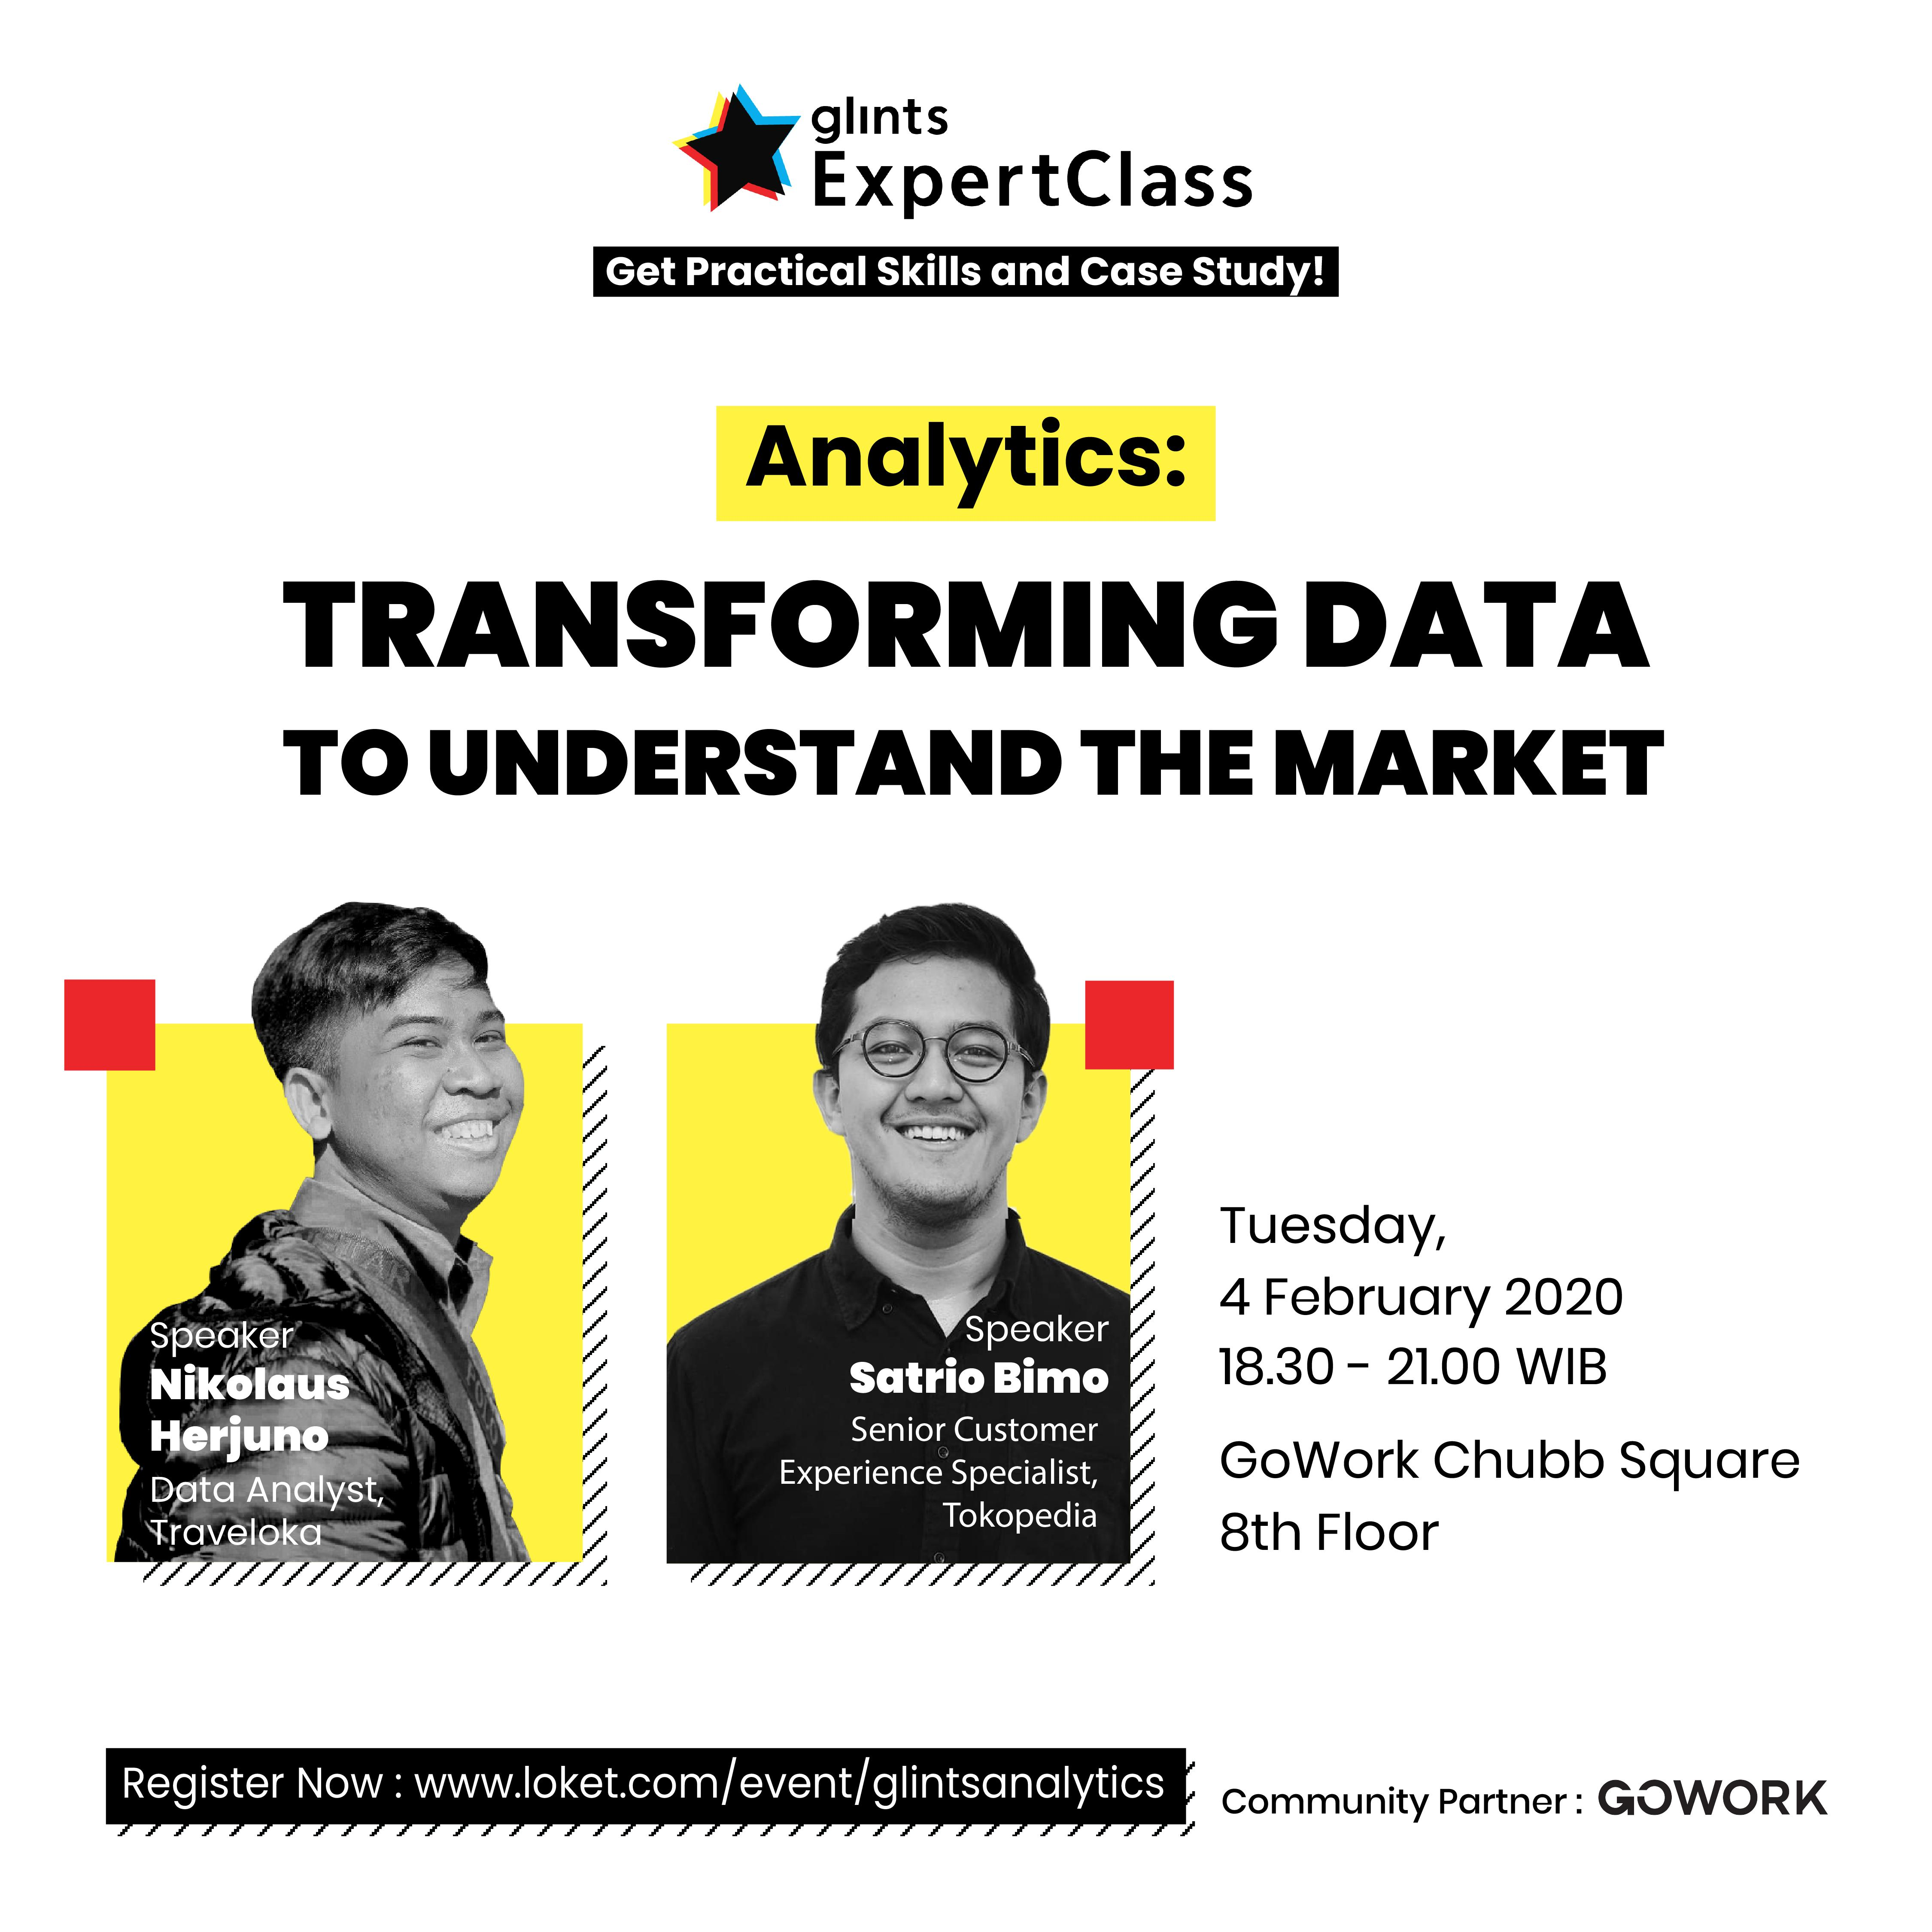 Glints Expert Class - Analytics : Transforming Data To Understand The Market